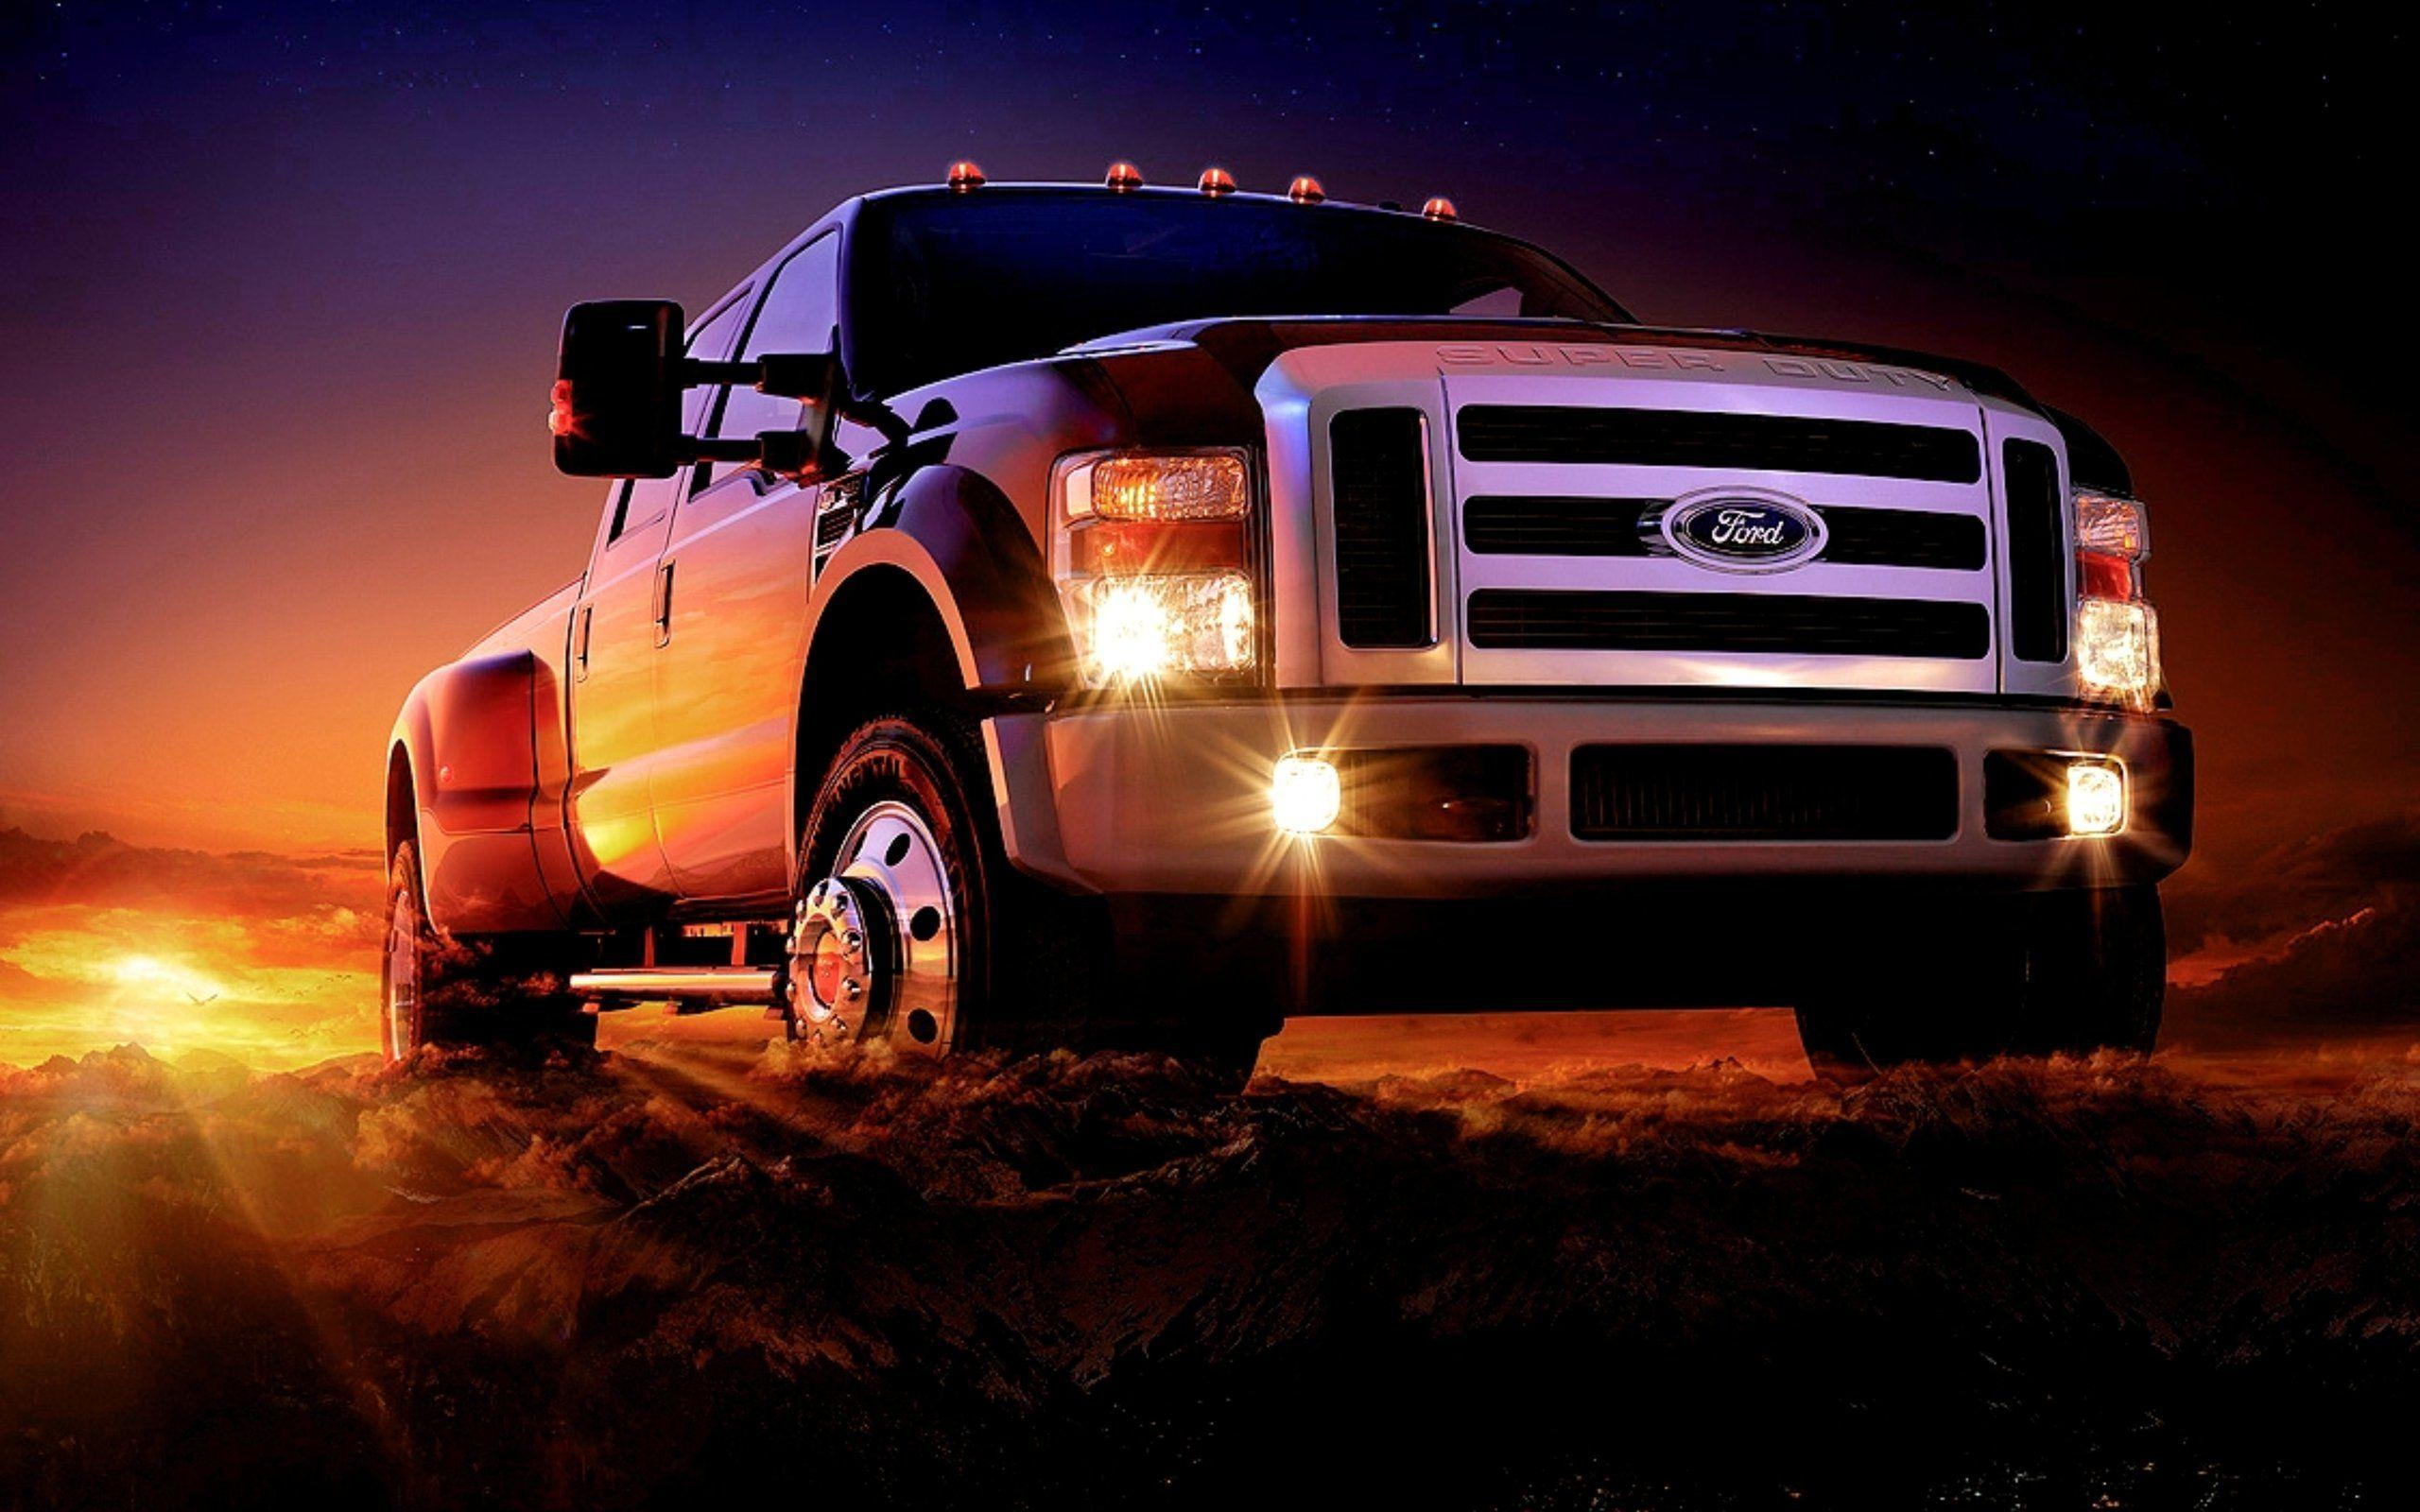 Ford Truck Wallpapers Top Free Ford Truck Backgrounds Wallpaperaccess